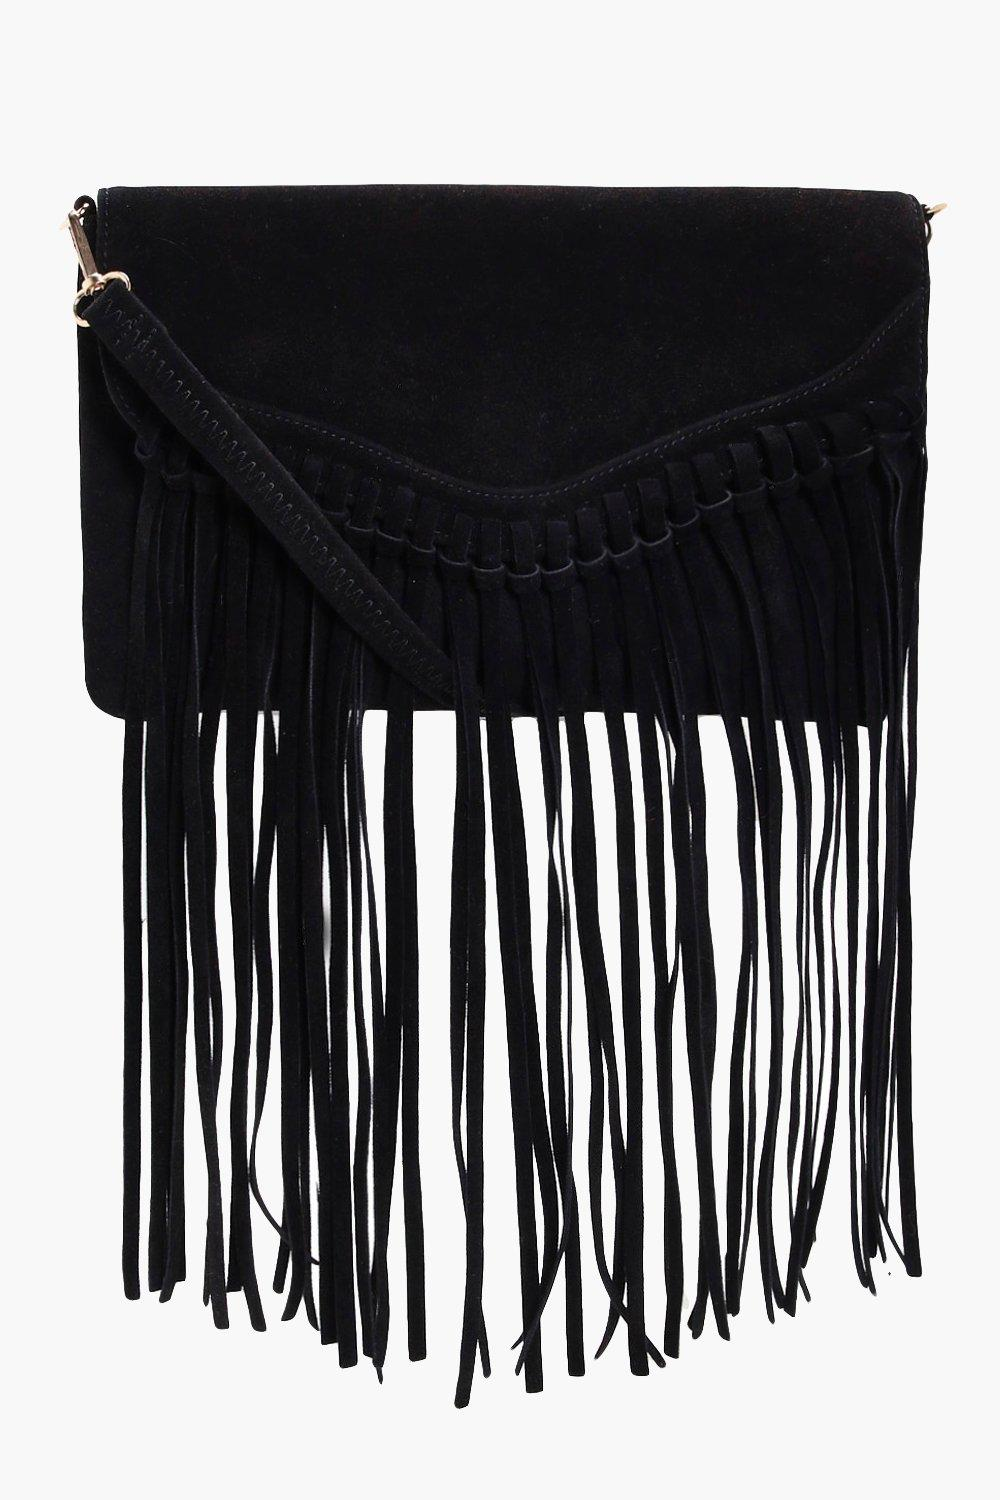 Fringed Suedette Cross Body Bag - black - Emily Fr